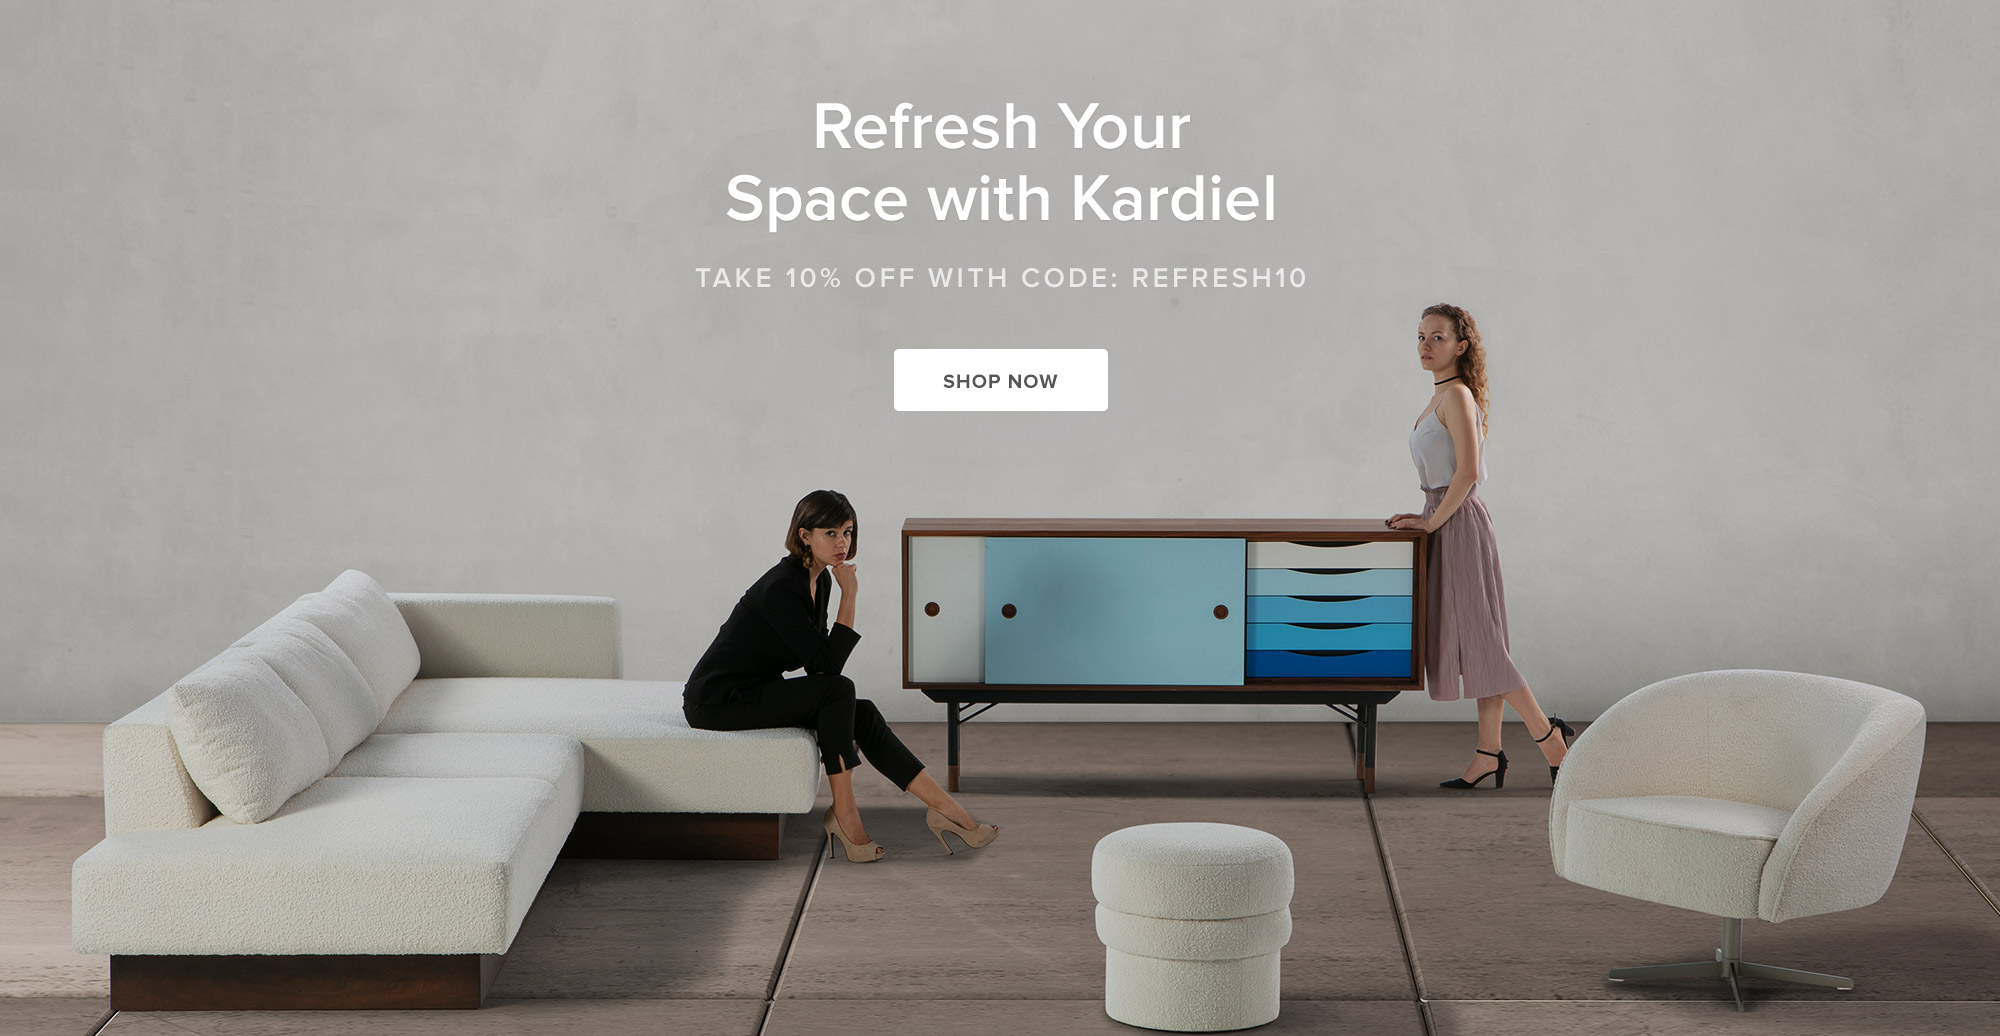 Refresh Your Space with Kardiel